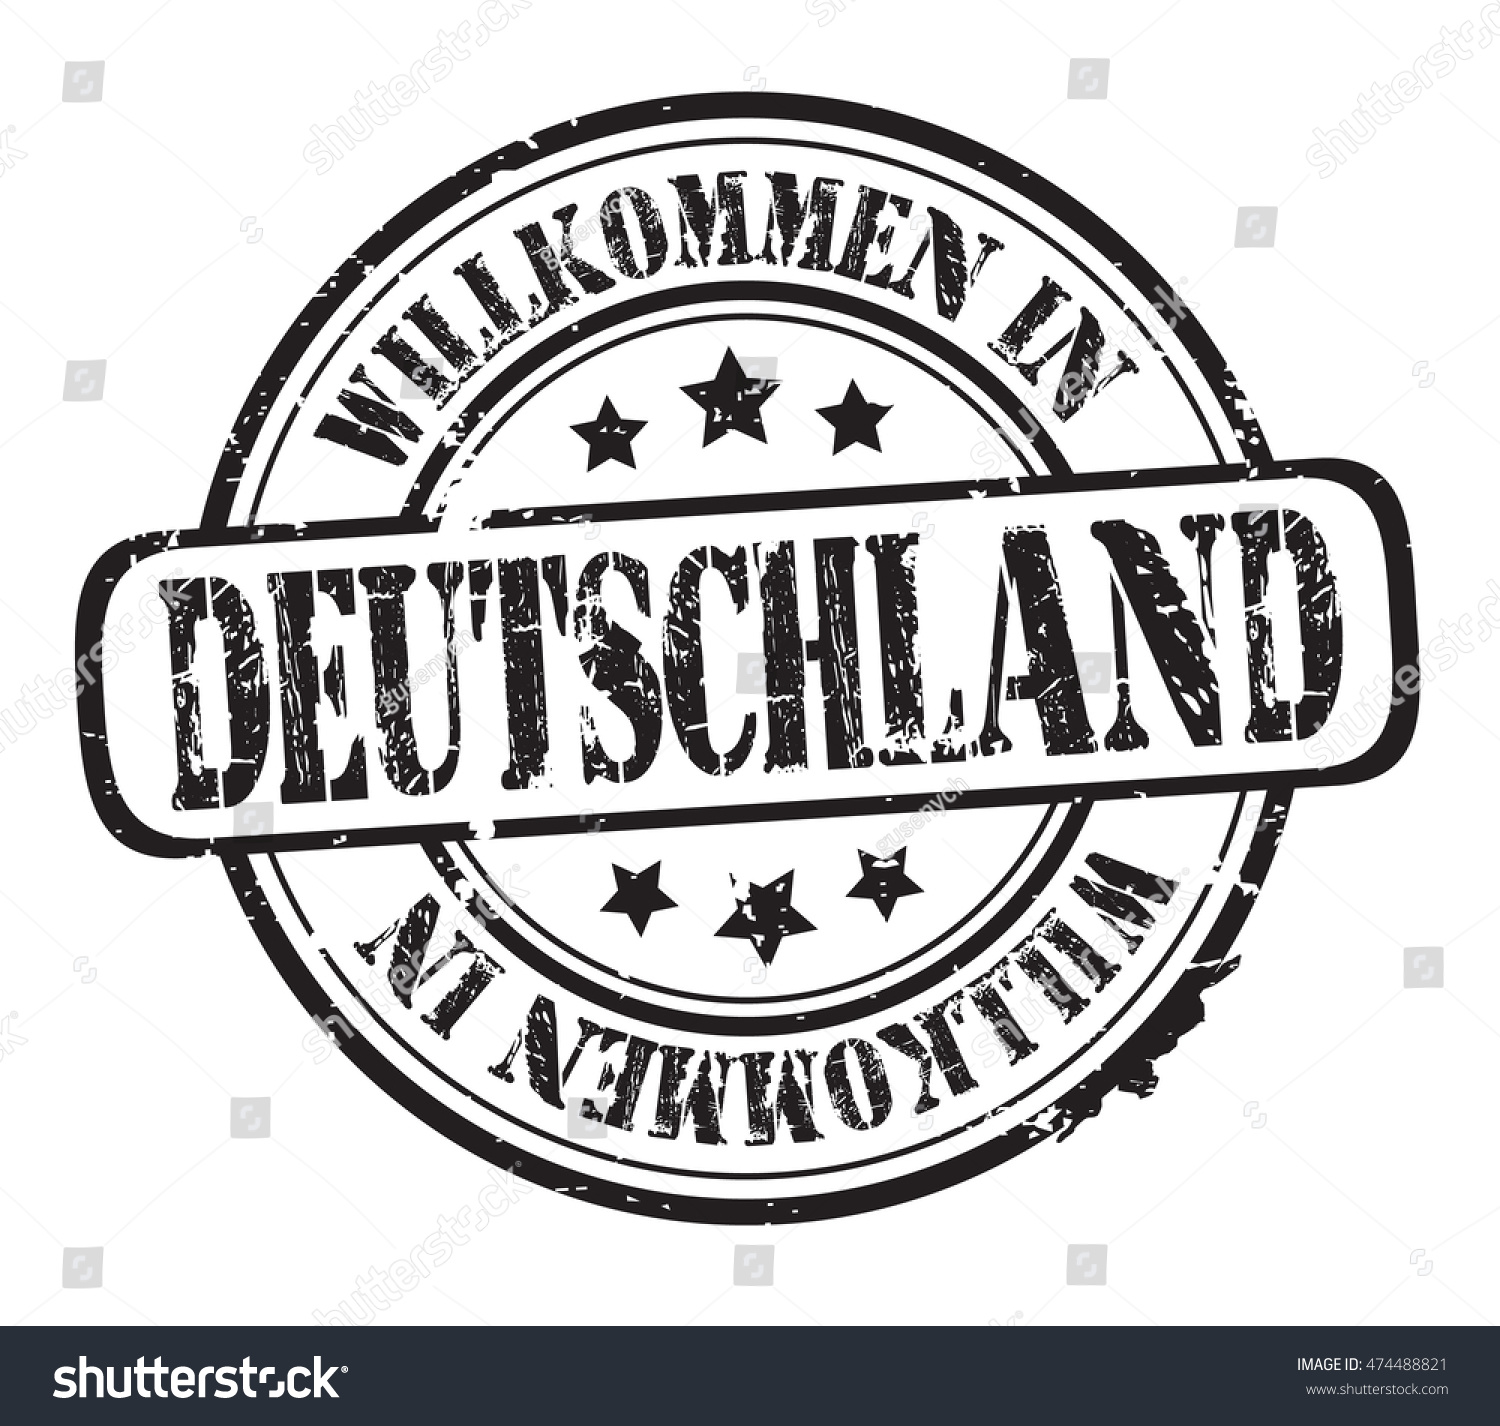 Rubber stamp text welcome germanyin german stock vector 474488821 rubber stamp with text welcome to germanyin german on white buycottarizona Gallery